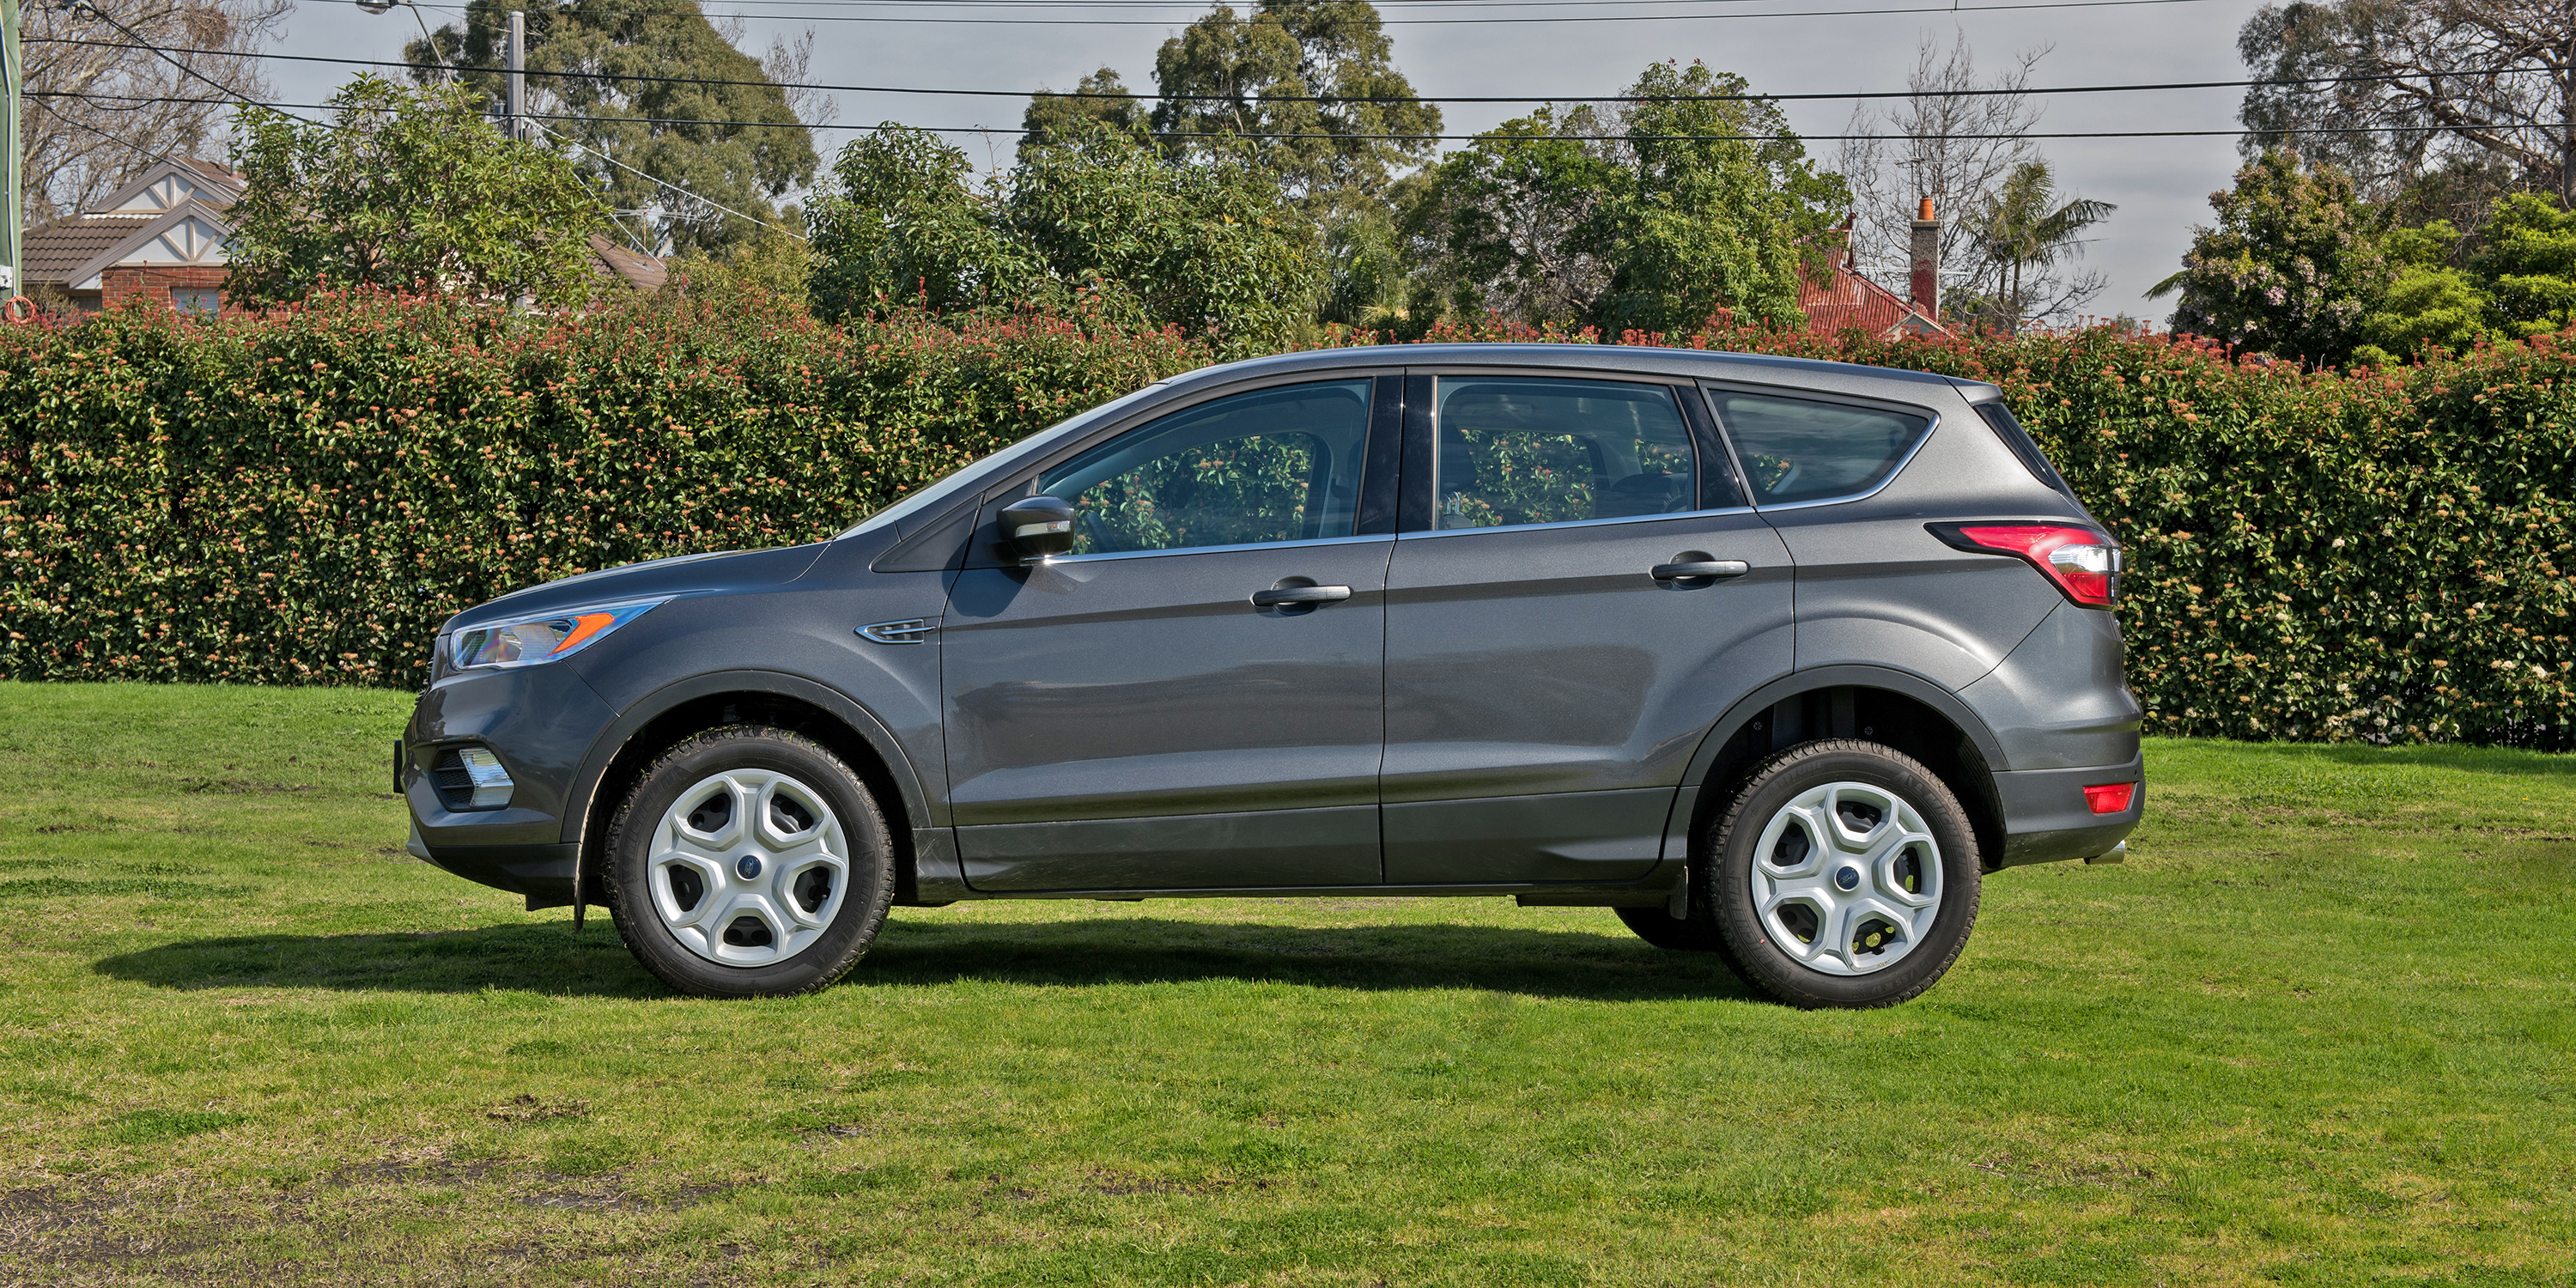 2017 Ford Escape range review - Photos